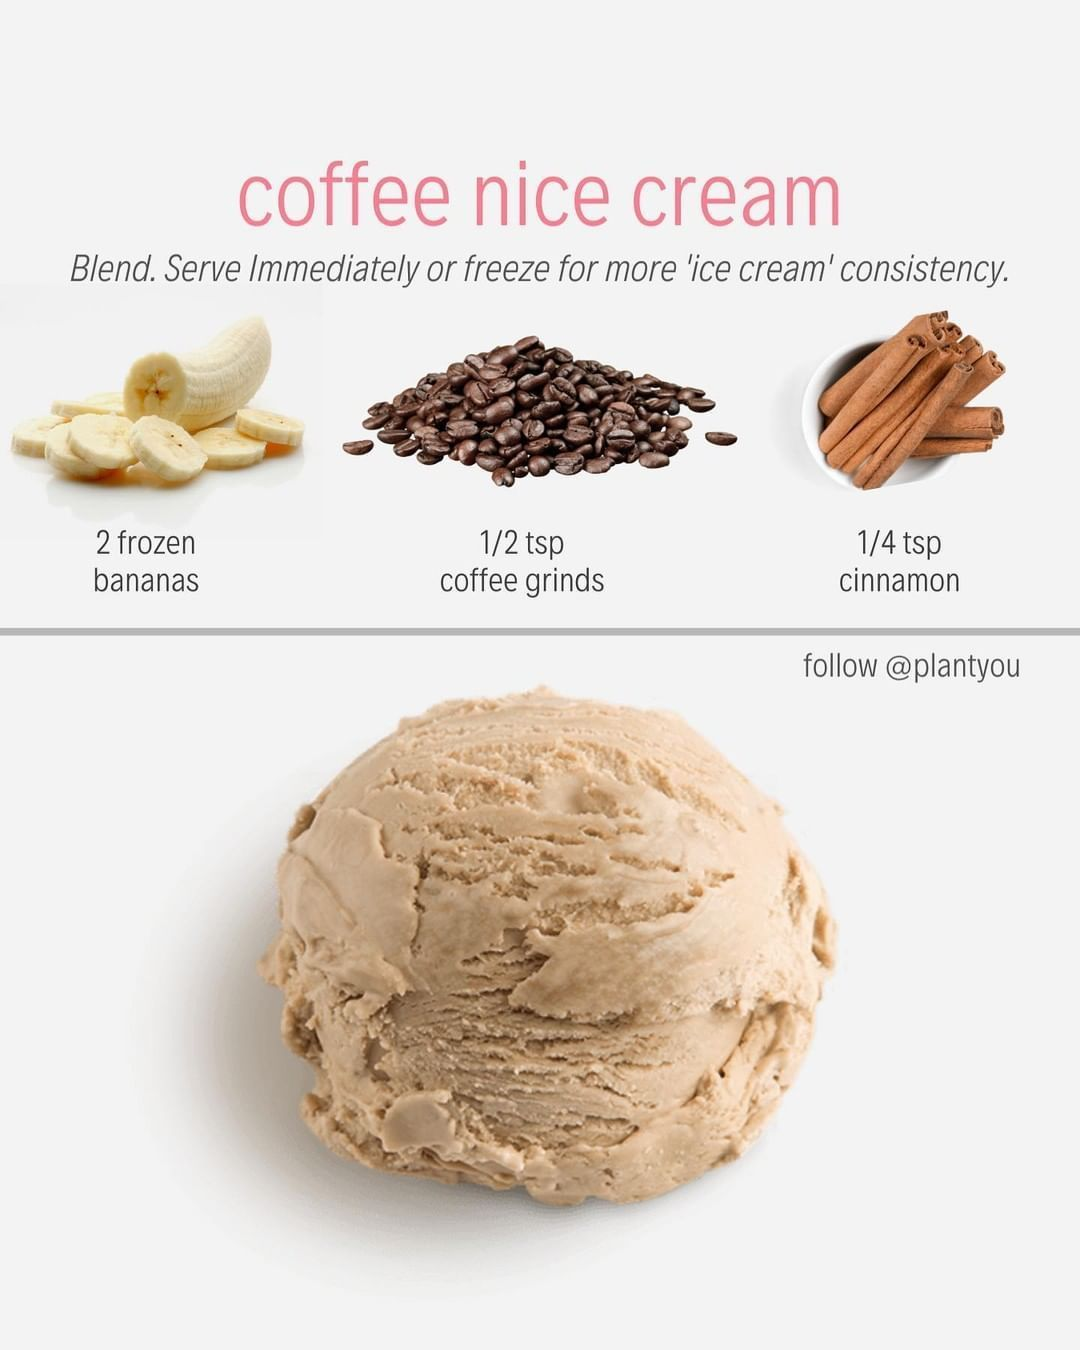 Need A Pick Me Up In The Morning Try This Delicious Coffee Vegan Nice Cream Vegan Veganlifest In 2020 Vegan Nice Cream Vegan Coffee Ice Cream Nice Cream Recipe